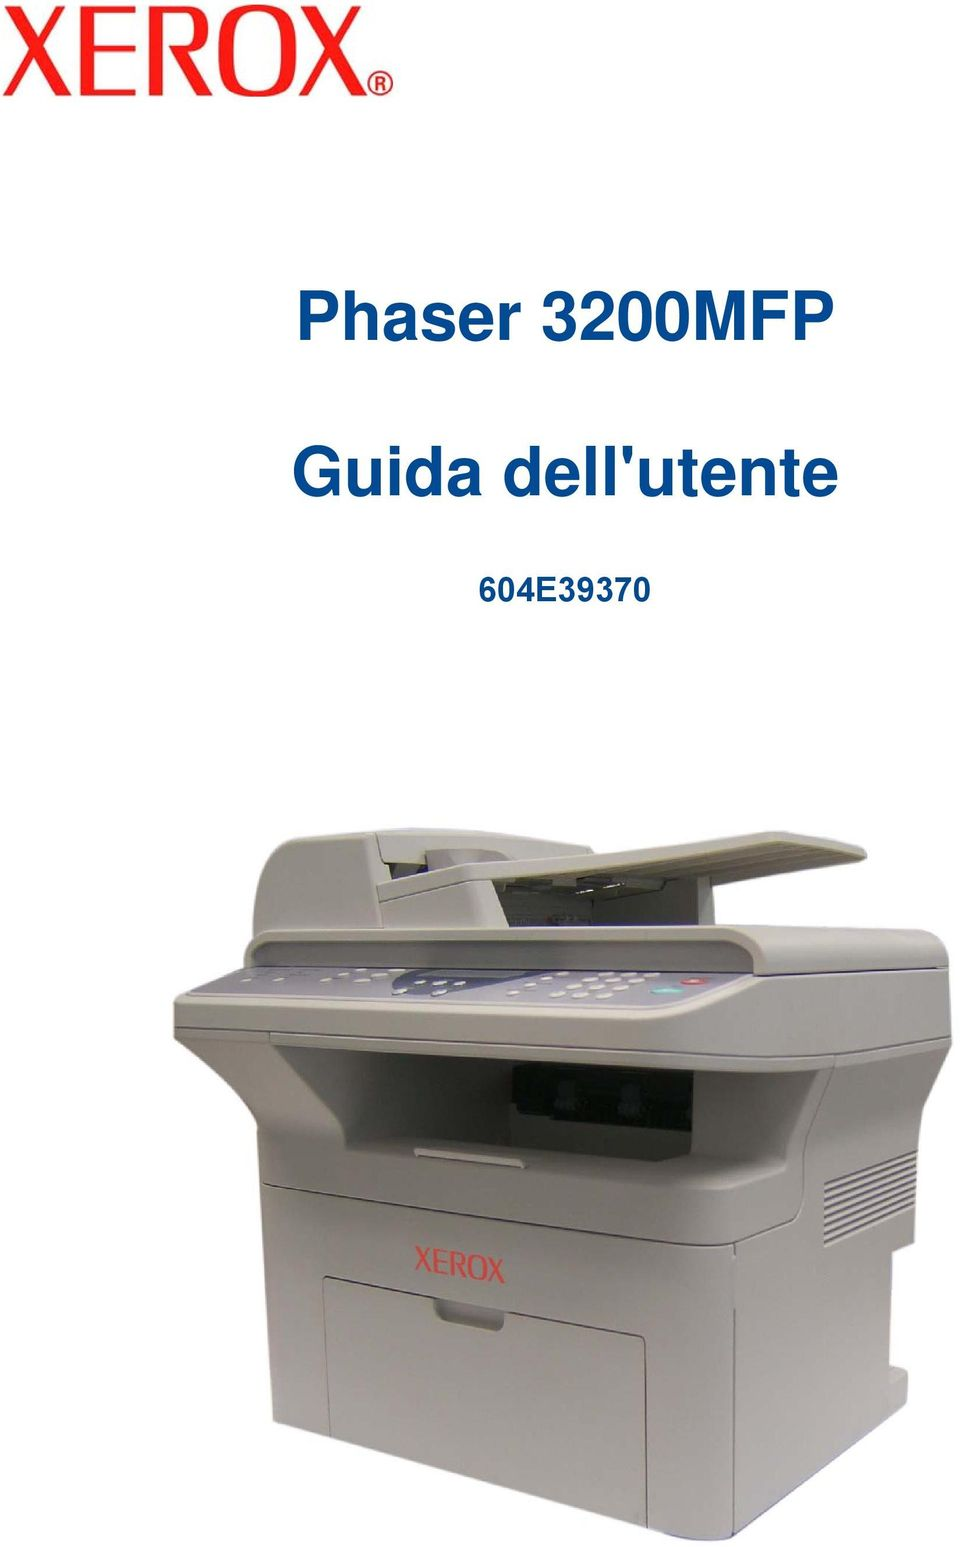 PILOTE 3200MFP TÉLÉCHARGER XEROX PHASER